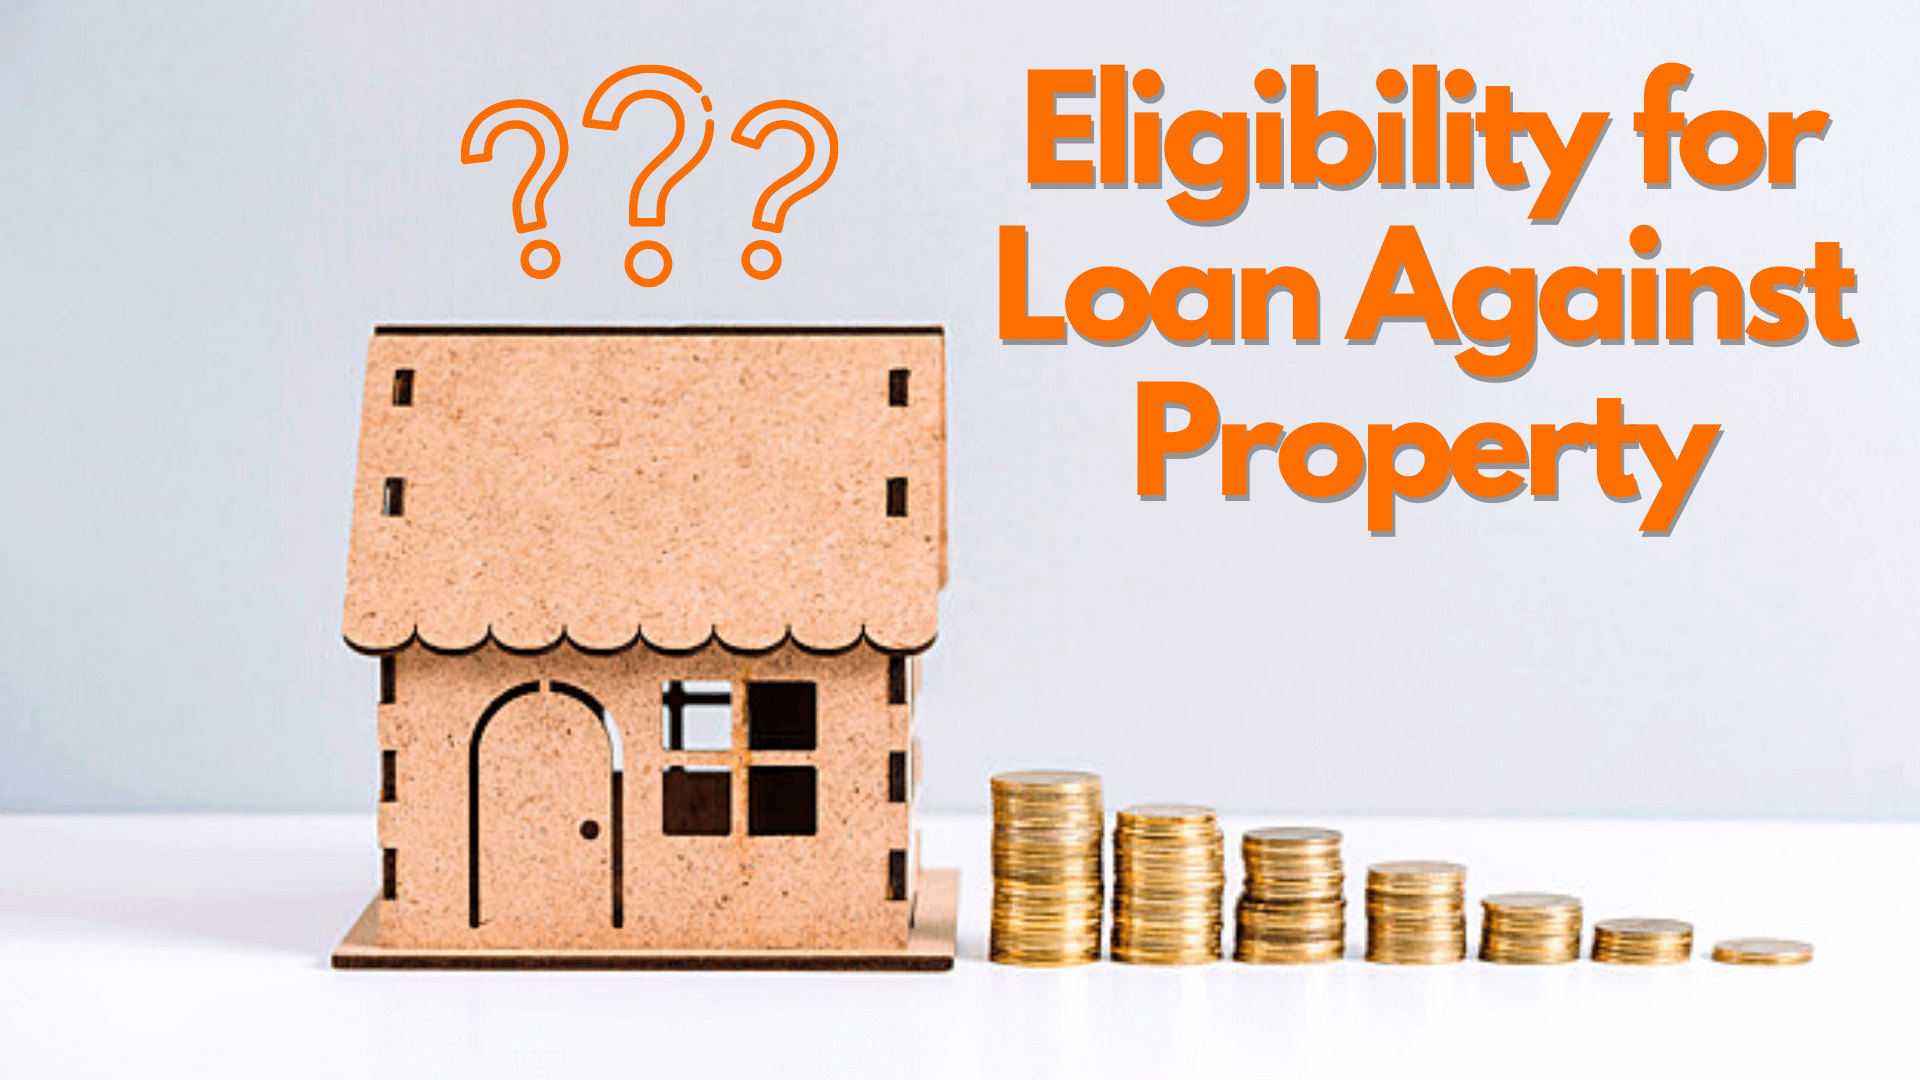 Eligibility for loan against property